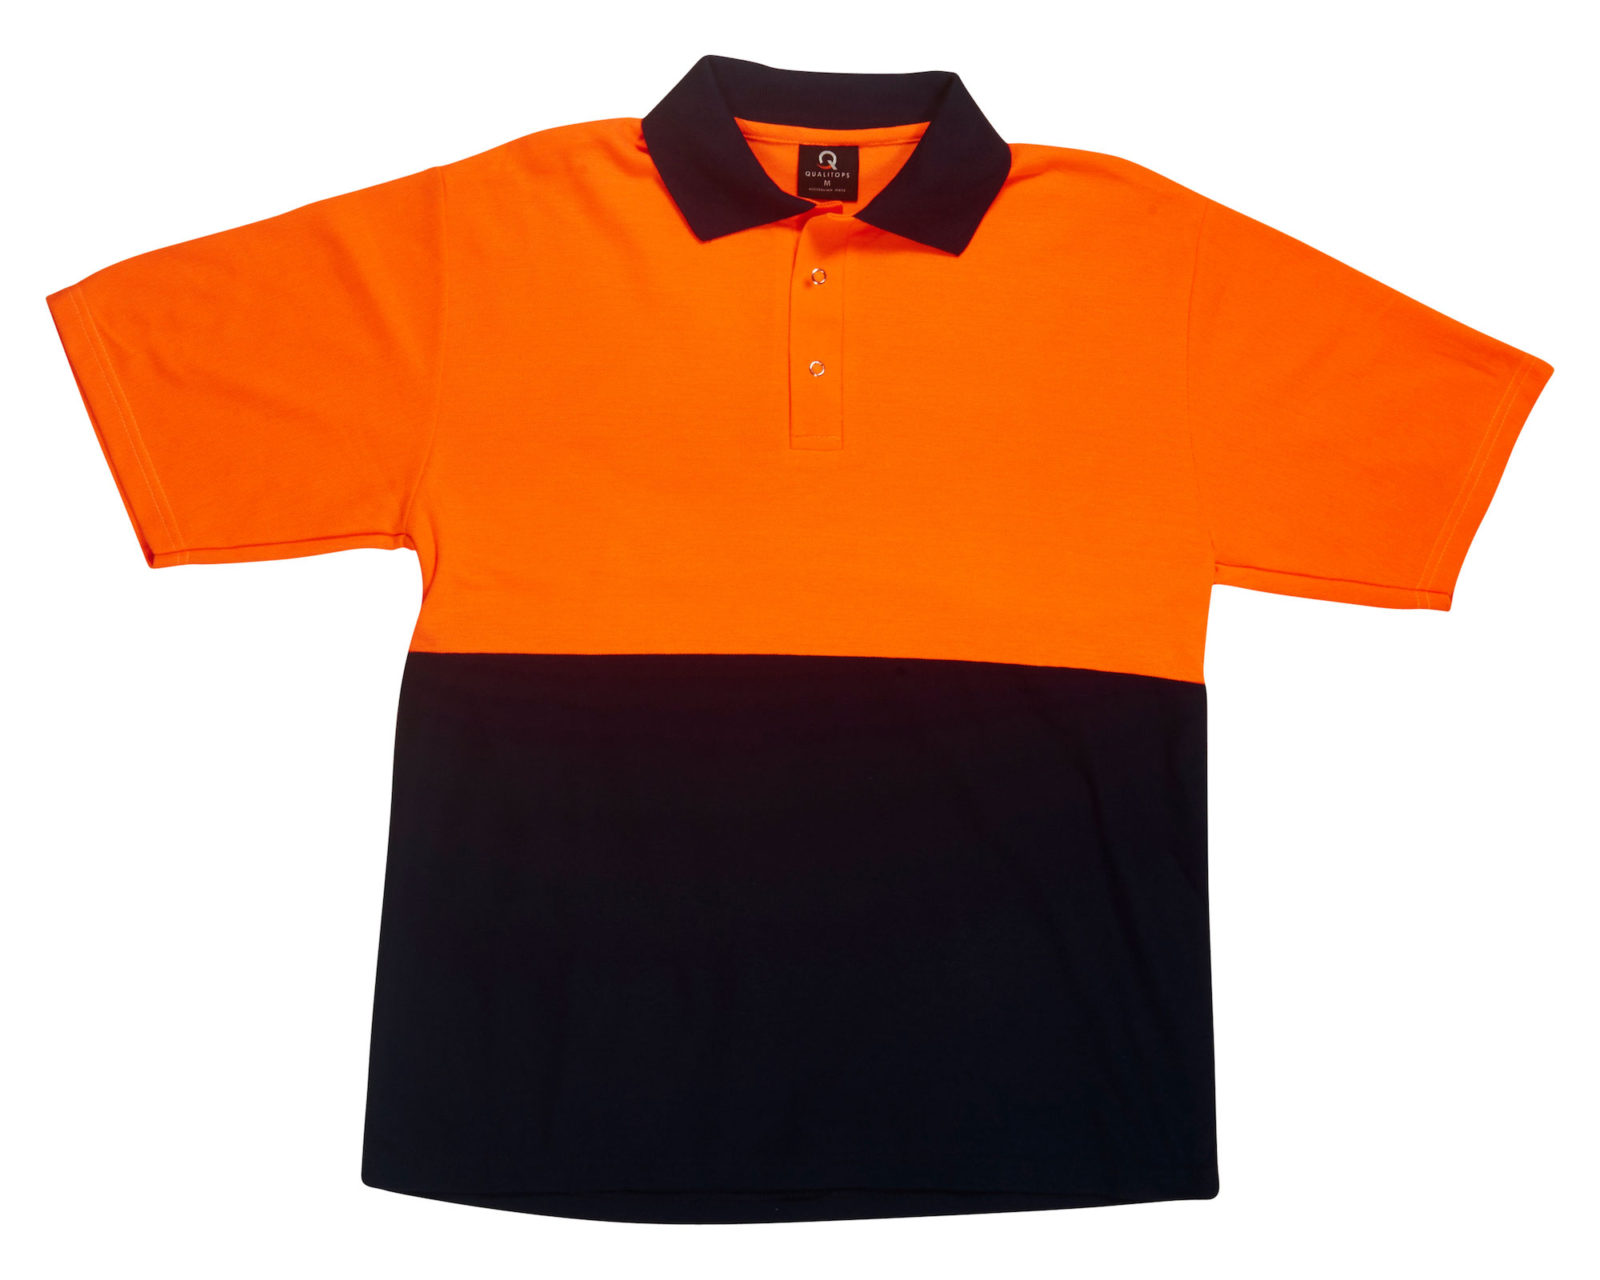 Qualitops Mens Short Sleeve Hi VIs Two Tone Polo Polycotton Australian made clothing